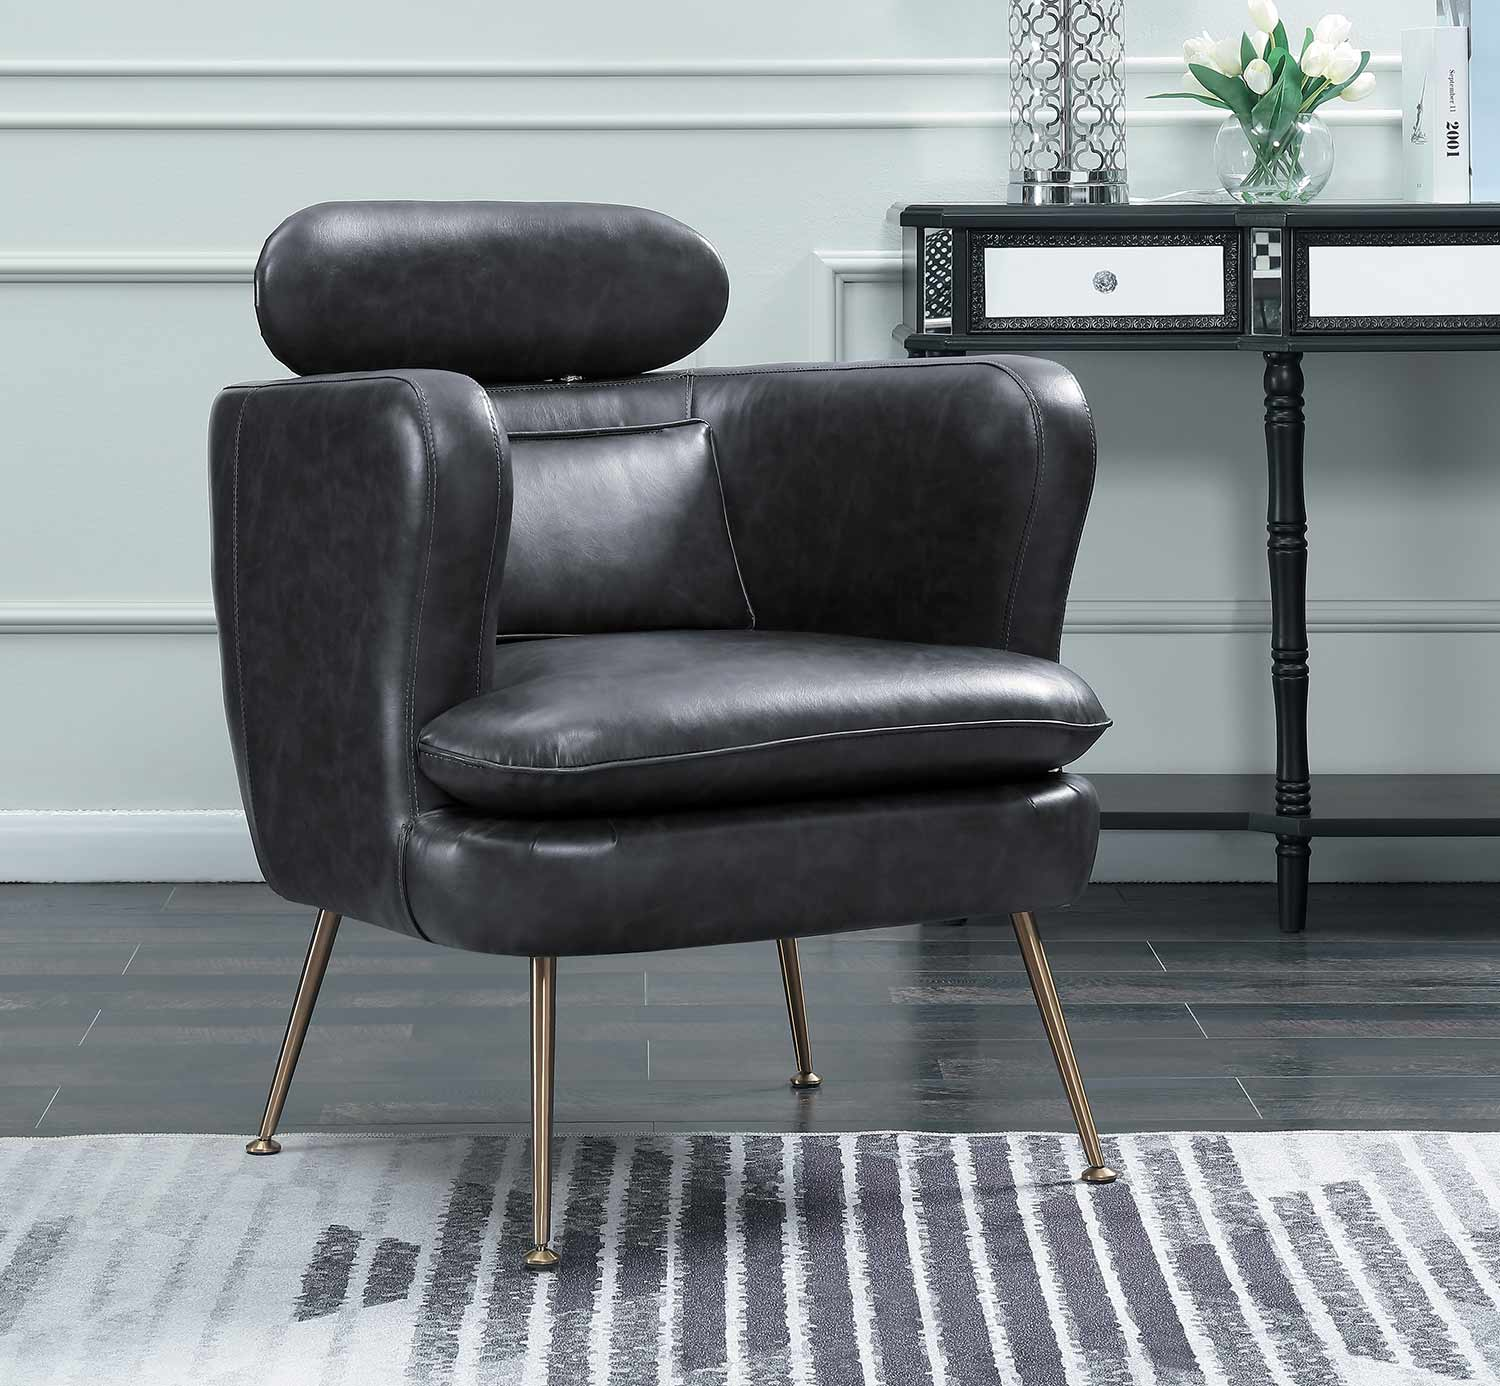 Homelegance Orbit Accent Chair - Dark Gray